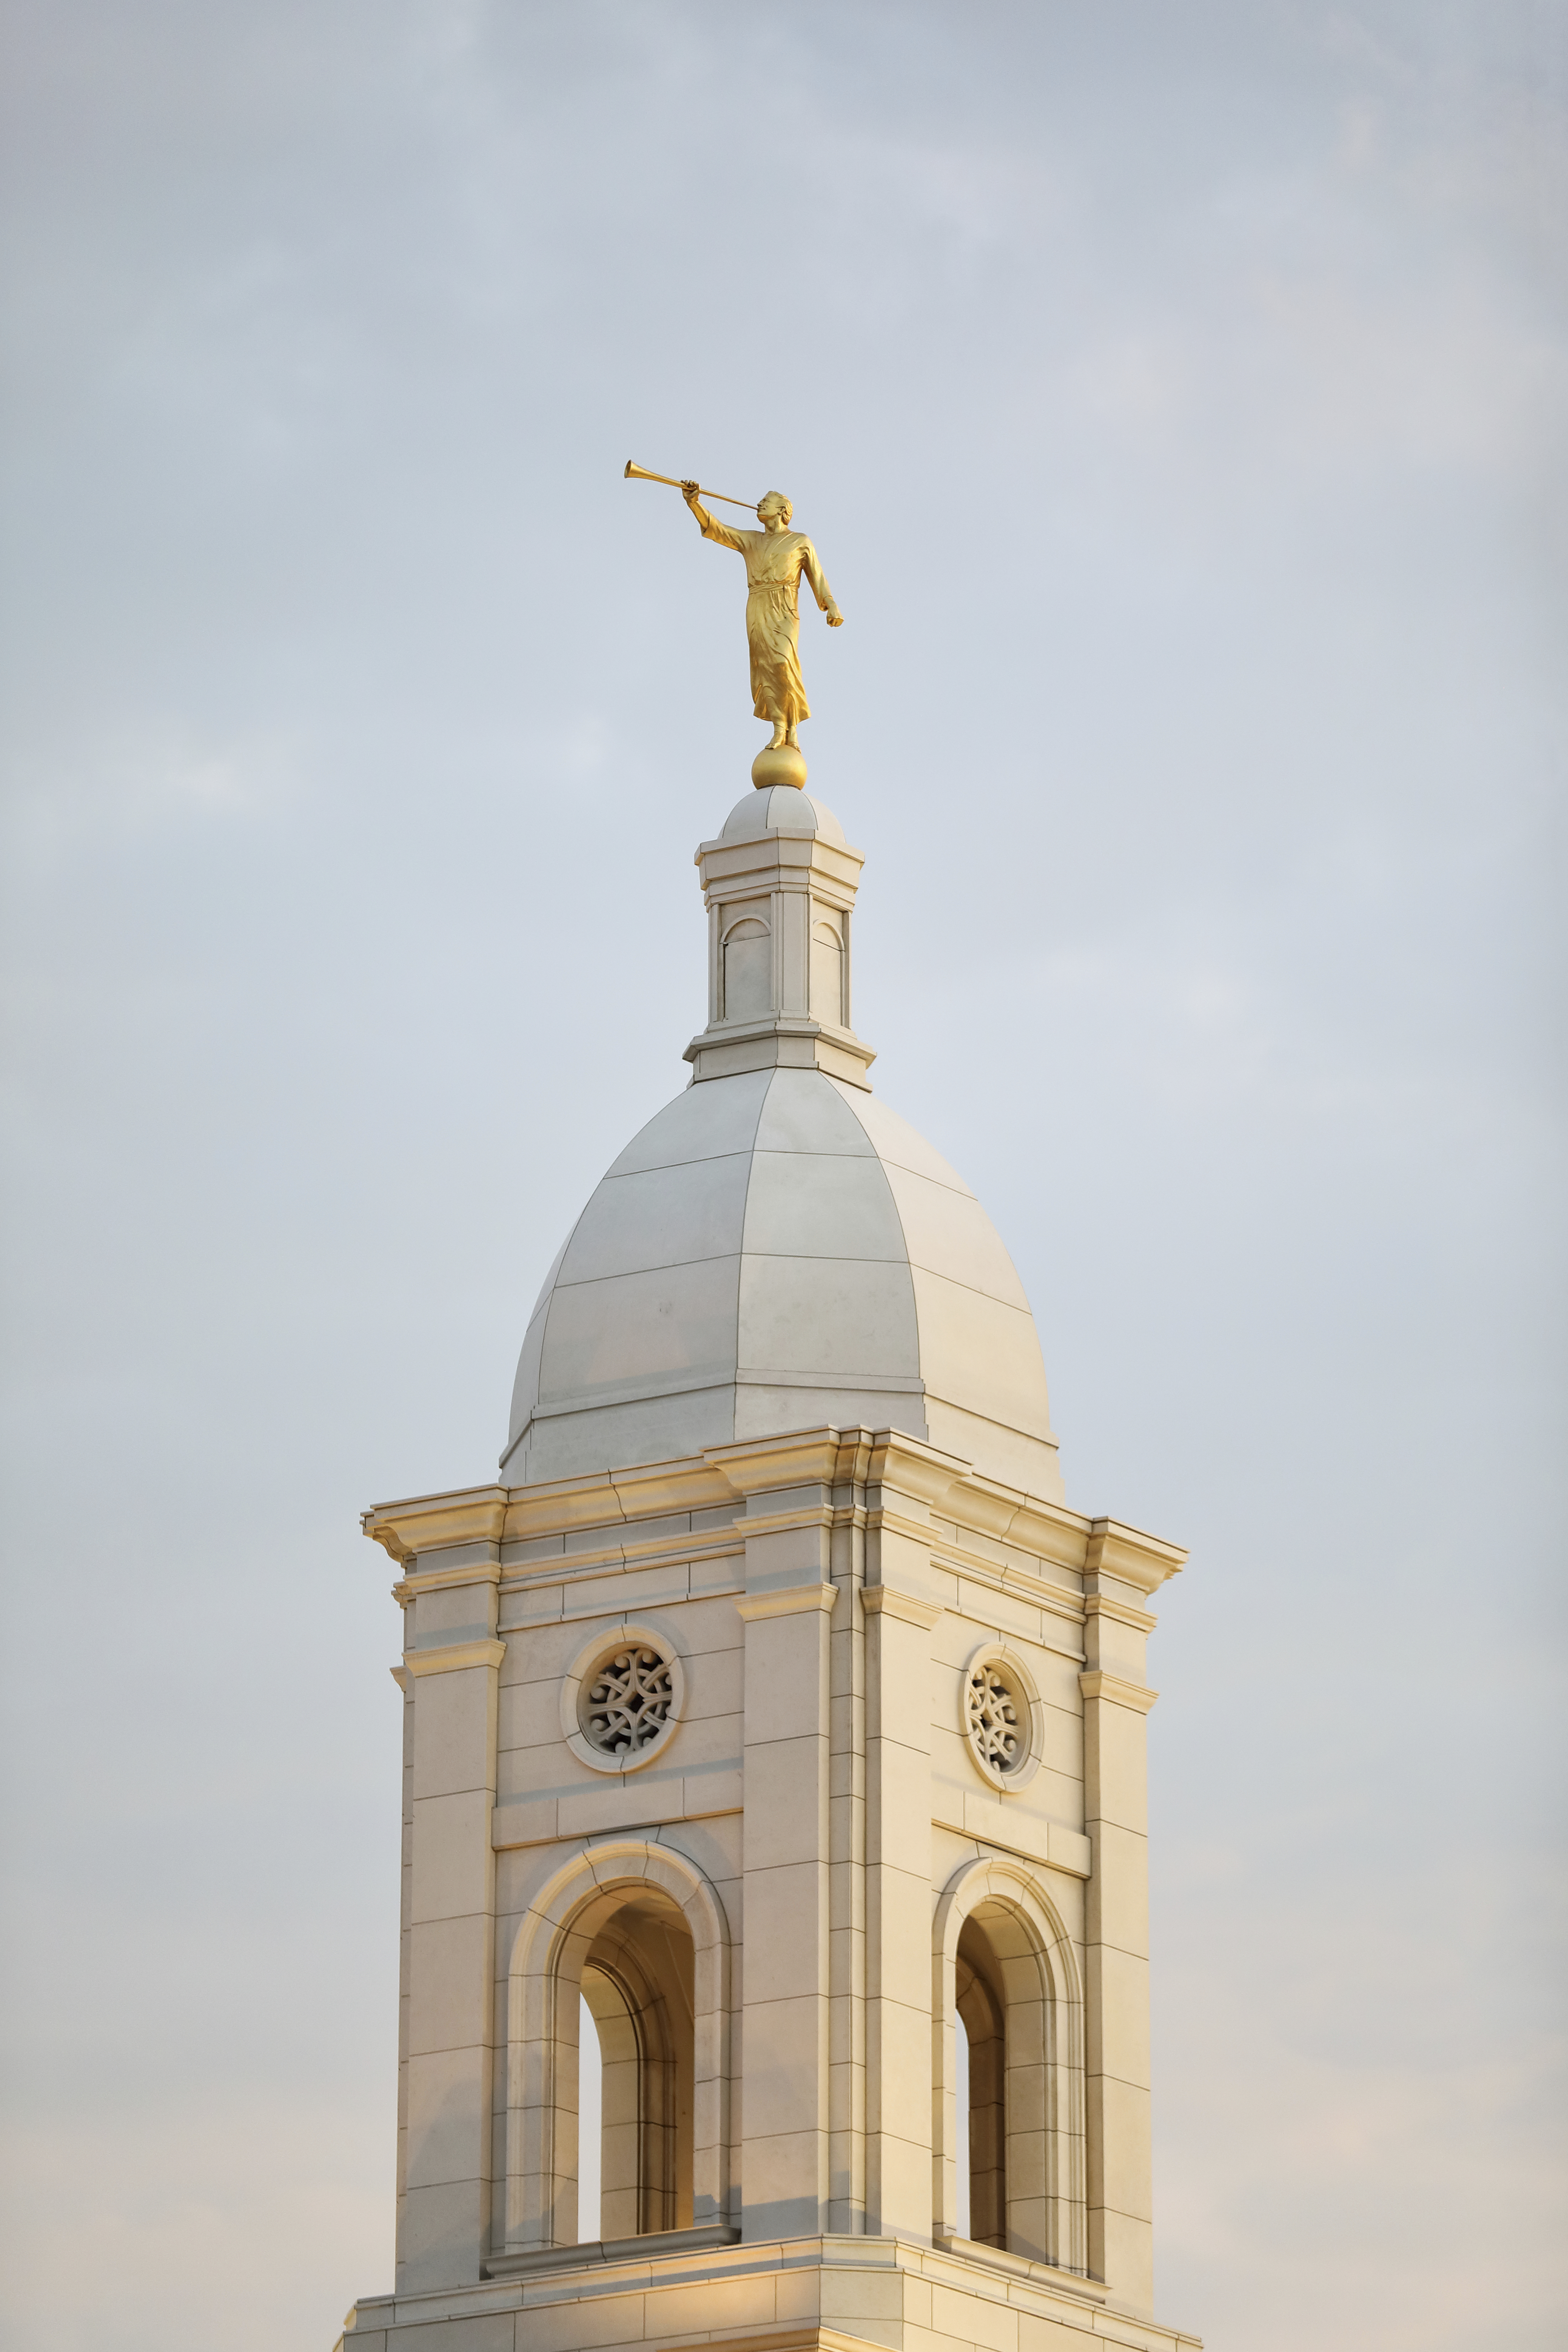 A close-up of the spire and the angel Moroni statue on the Barranquilla Colombia Temple.